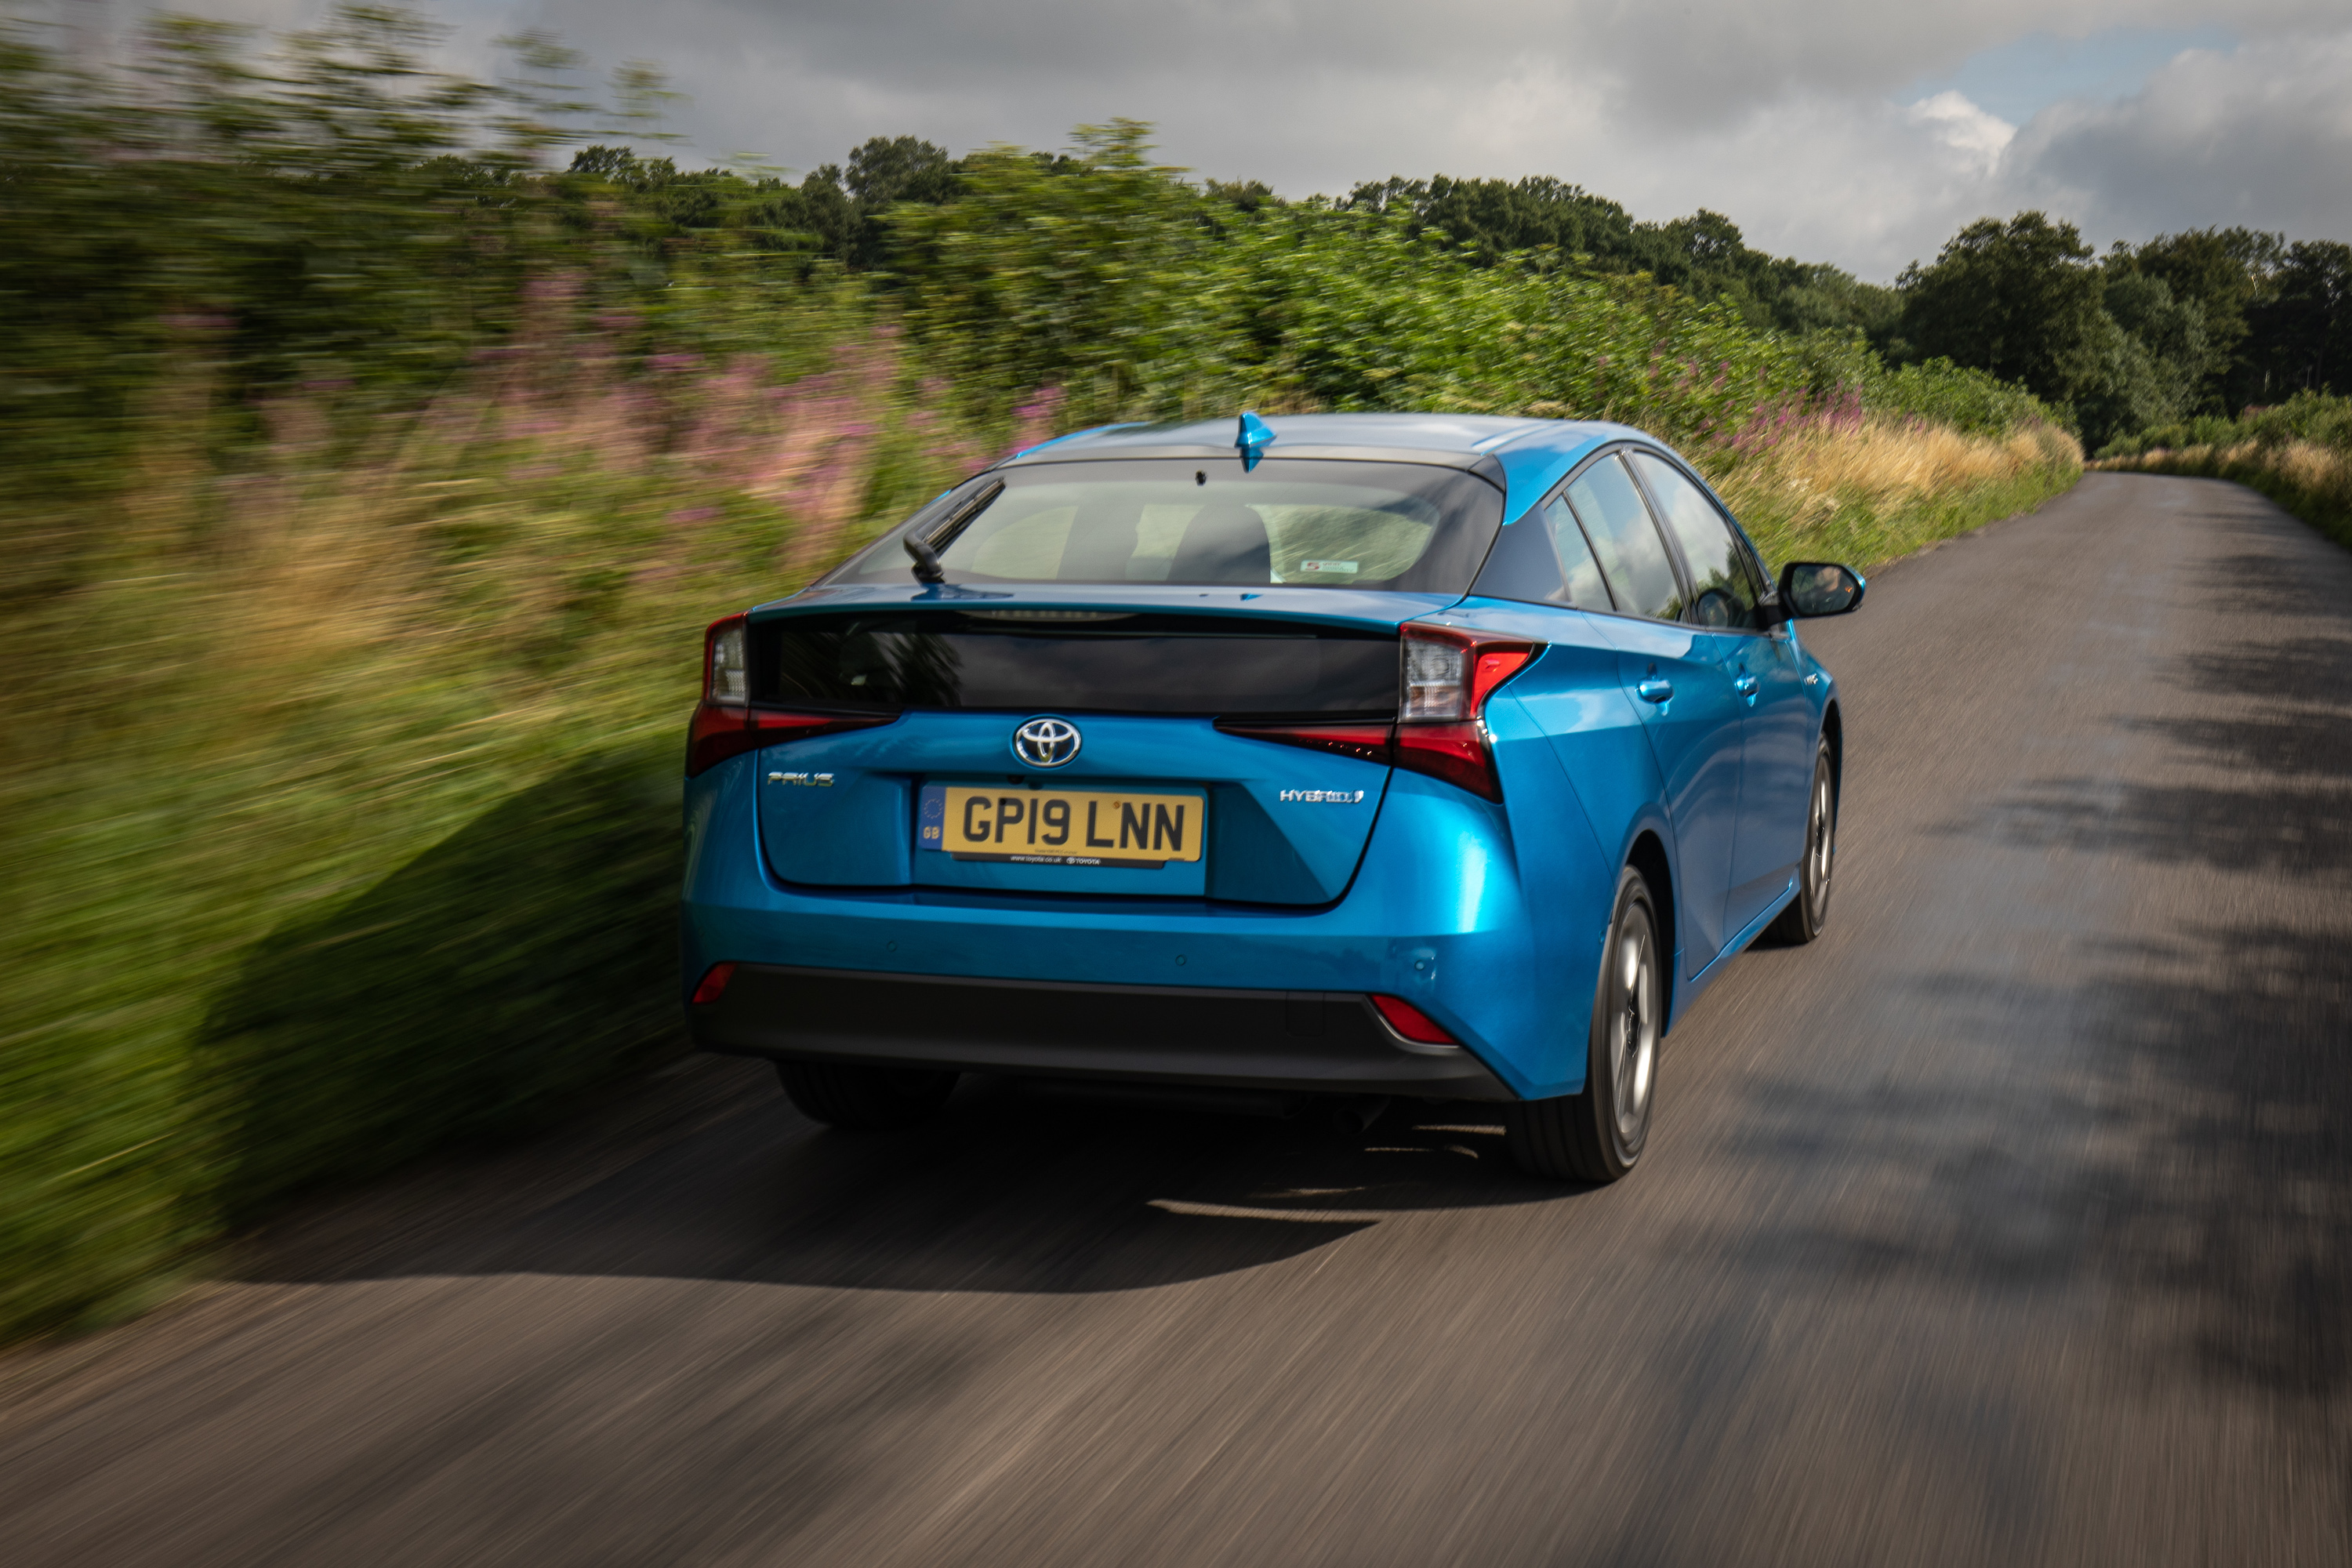 The rear of the Prius features futuristic styling